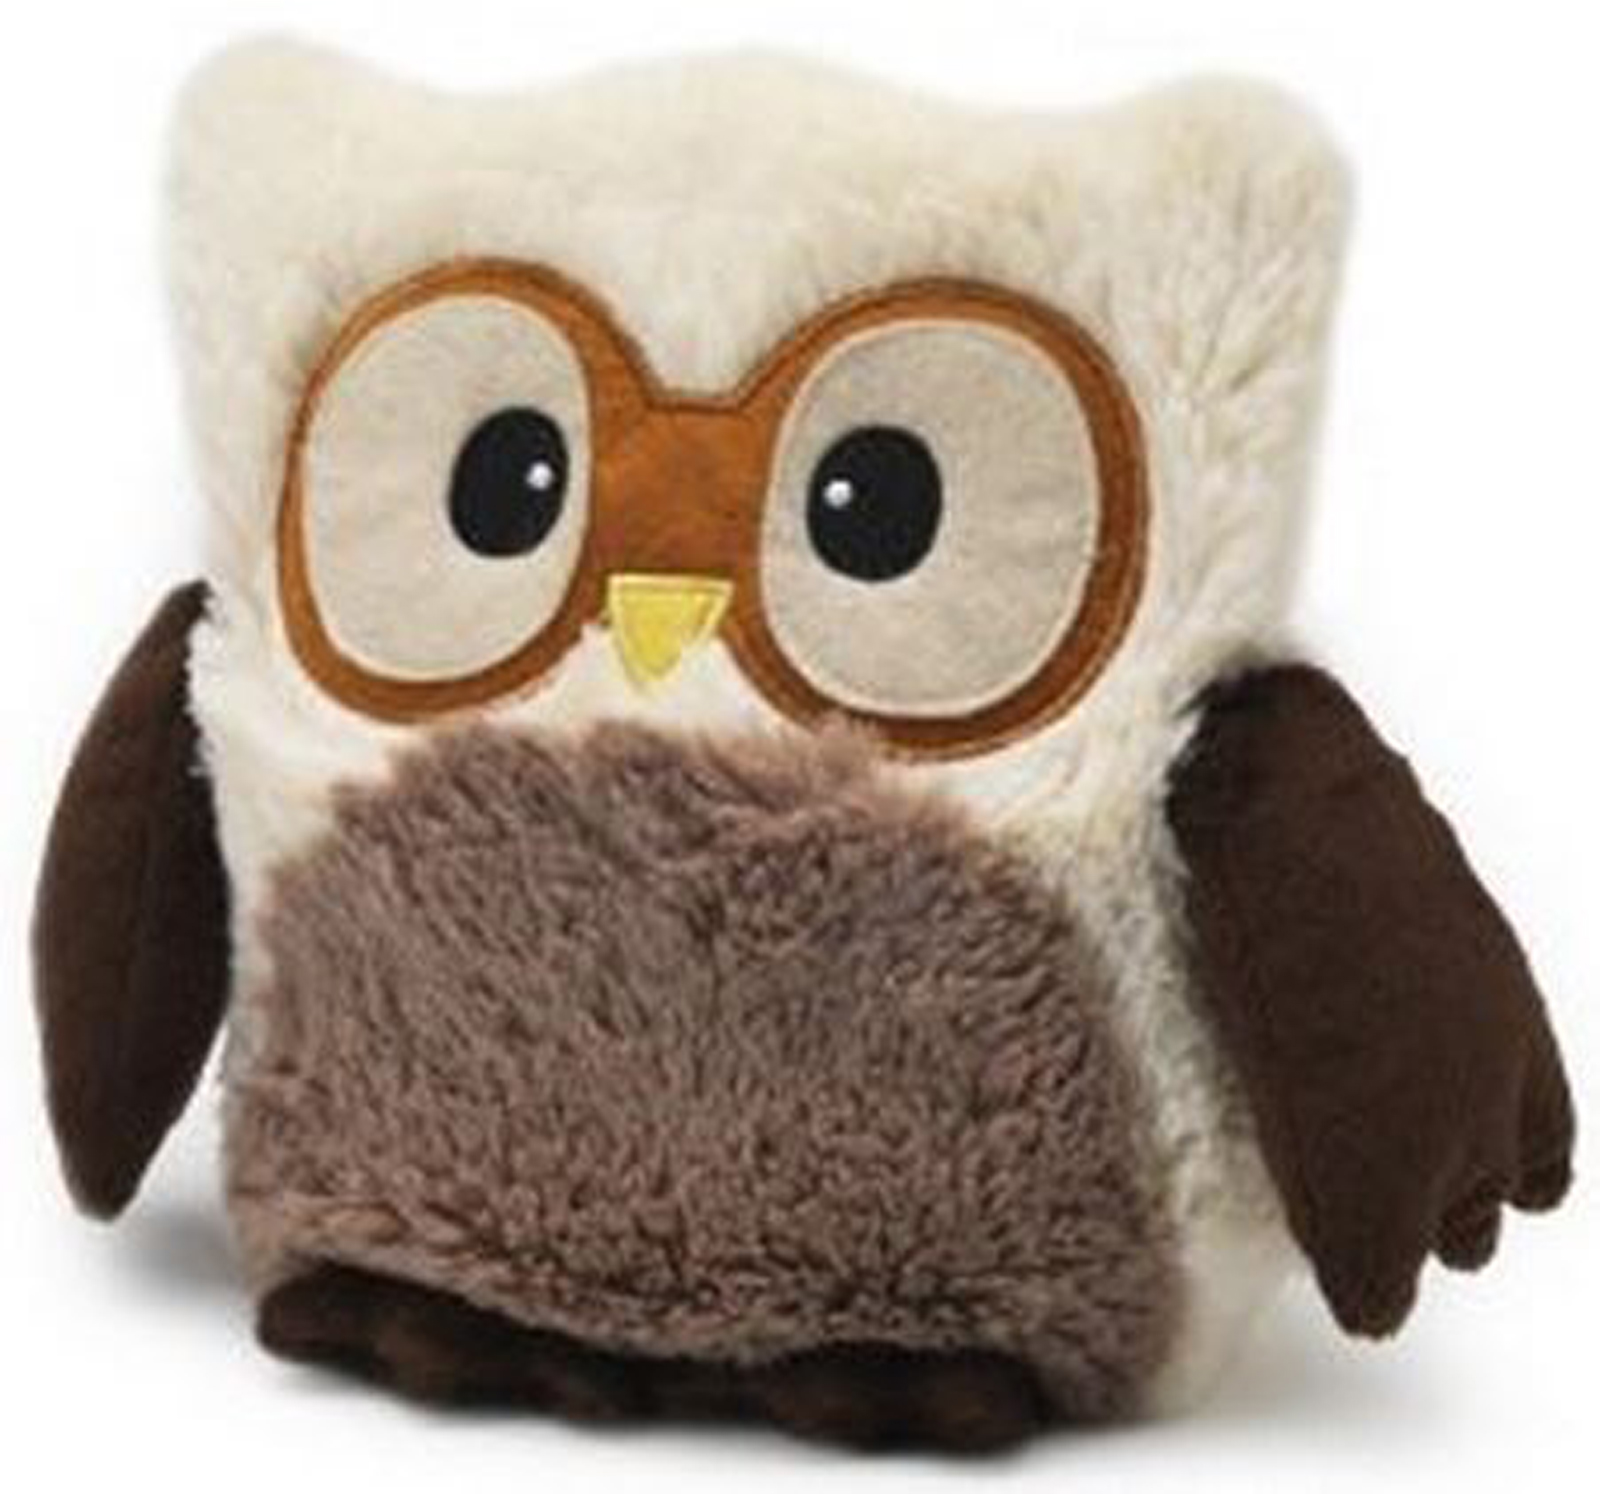 Stuff Owl Intelex Cream Owl Hooty Microwavable Cozy Plush Stuffed